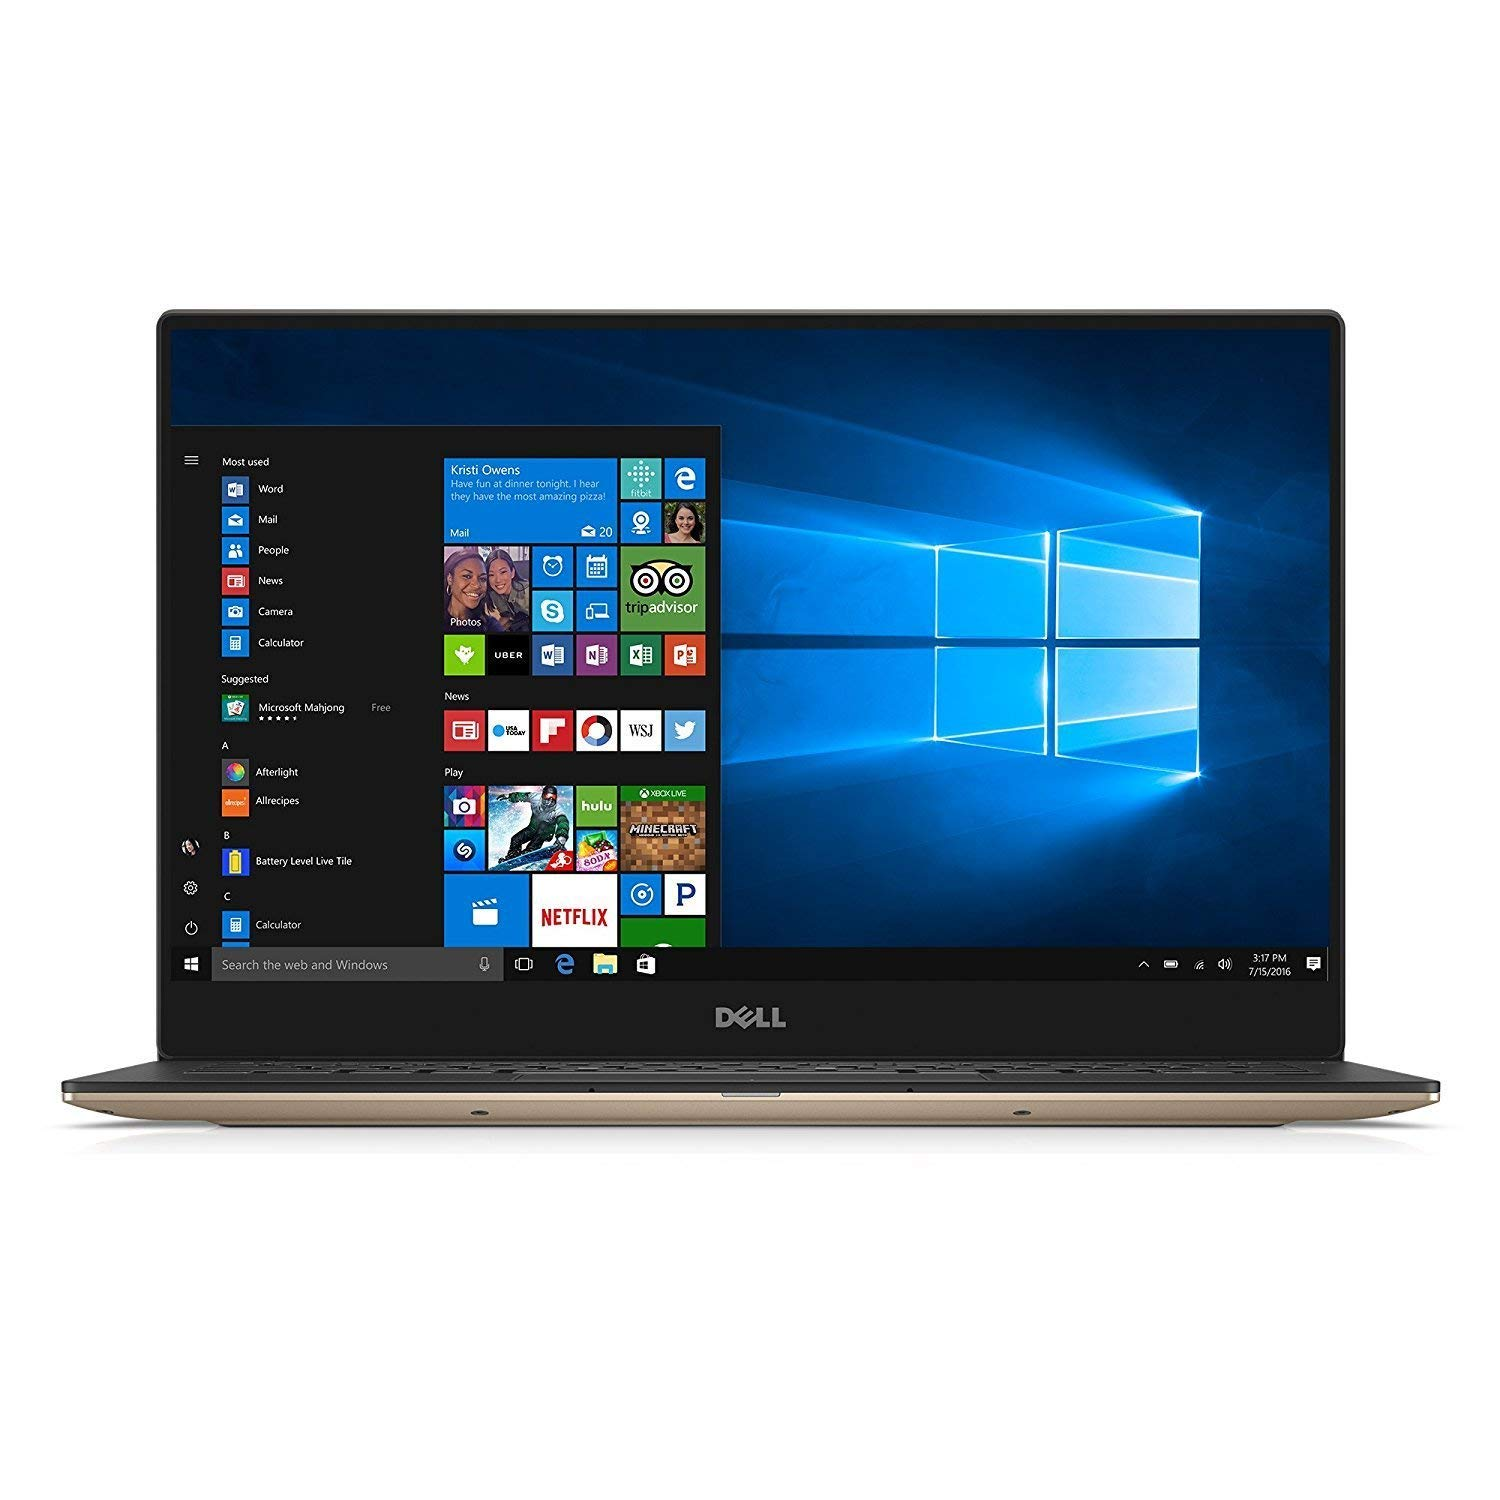 "Dell XPS 13 9360 13.3"" Laptop"